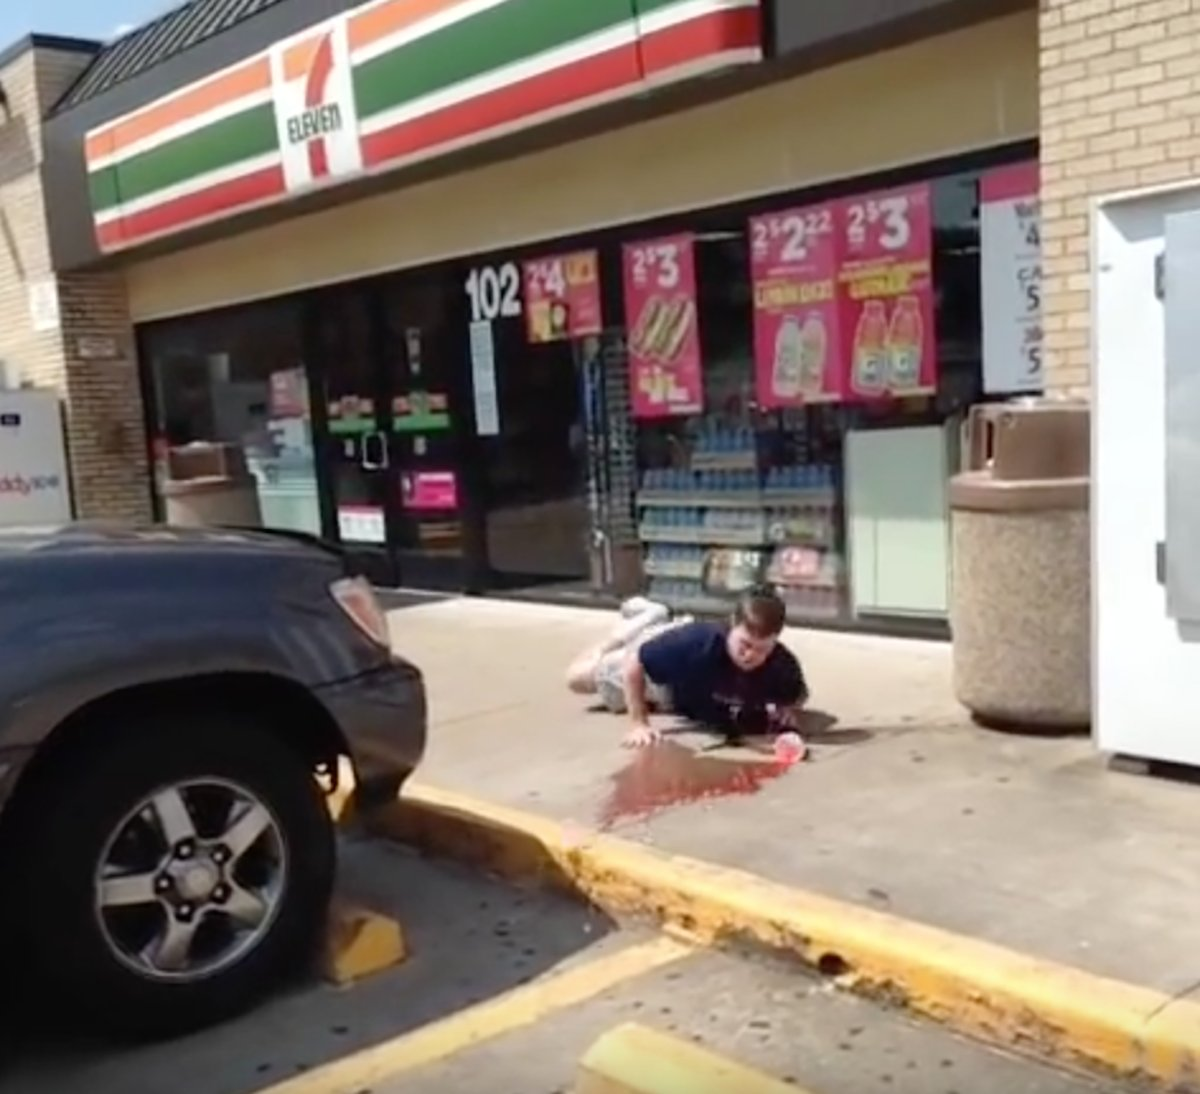 i'm glad @realDonaldTrump feels so passionately about america's fallen slurpees... #7Eleven https://t.co/4LubaNc2Zz